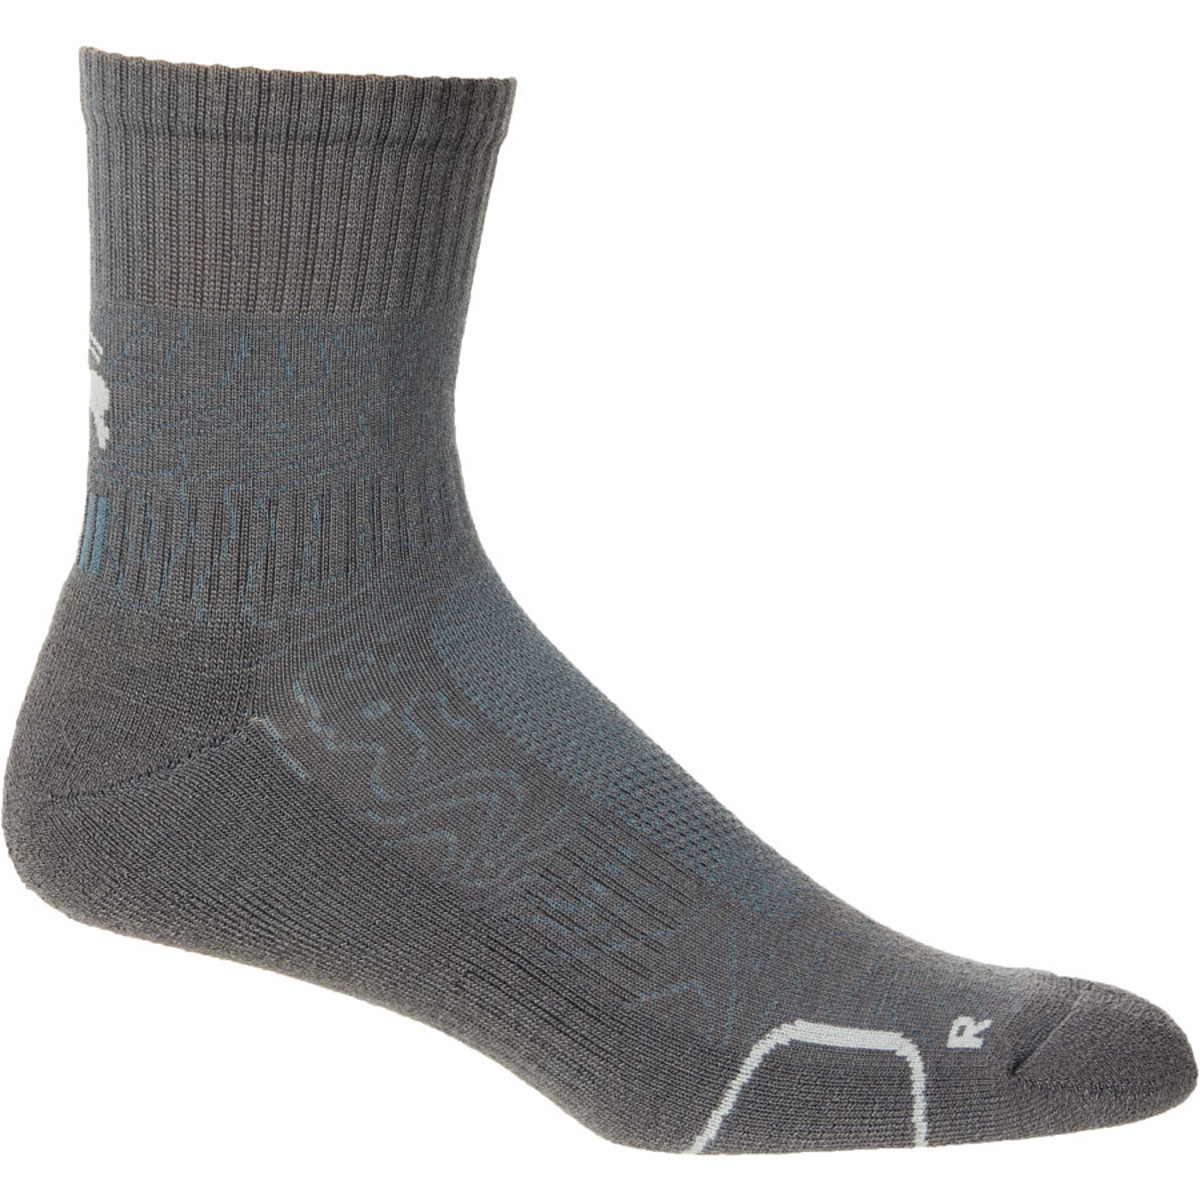 Backcountry.com Topo Merino Comp Trail Sock